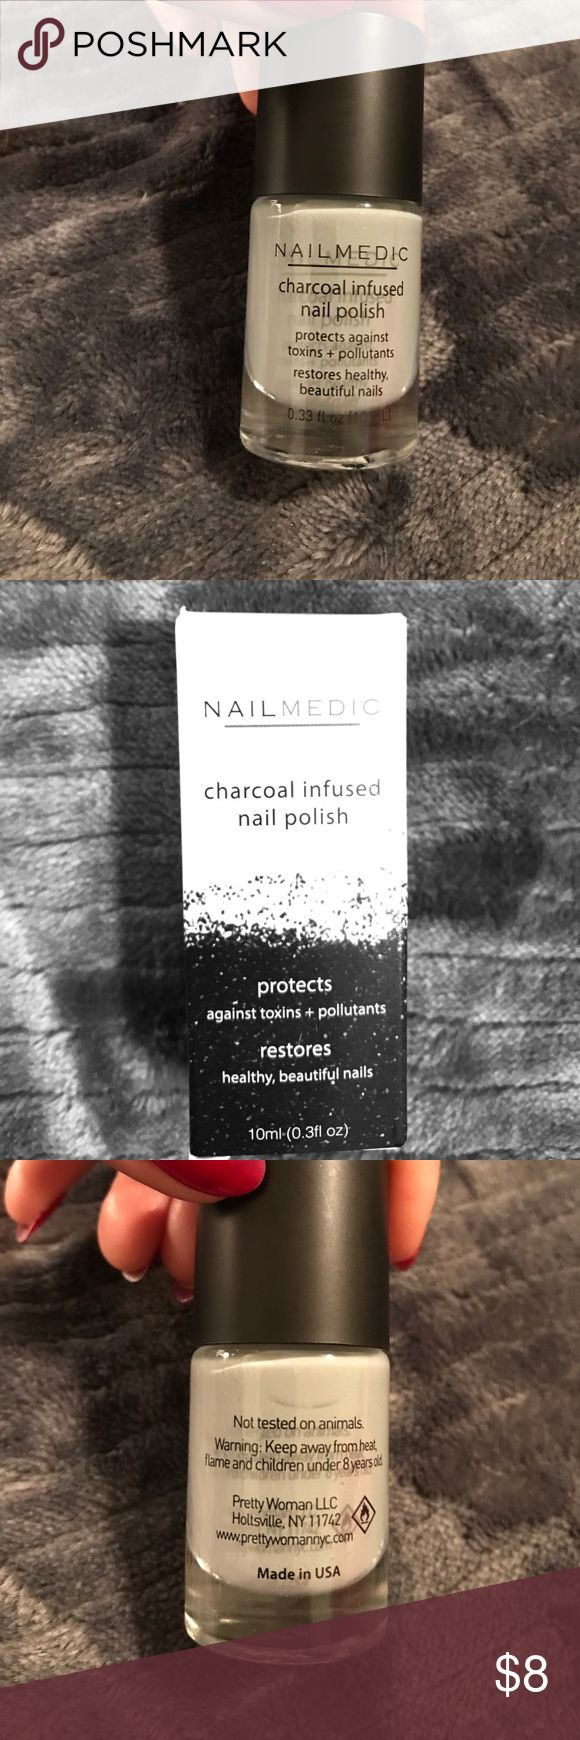 Nailmedic Charcoal infused nail polish Charcoal infused nail polish. Protects against toxins and pollutants. Restores healthy beautiful nails! Color: Volcanic Ash- Brand new! nailmedic Other